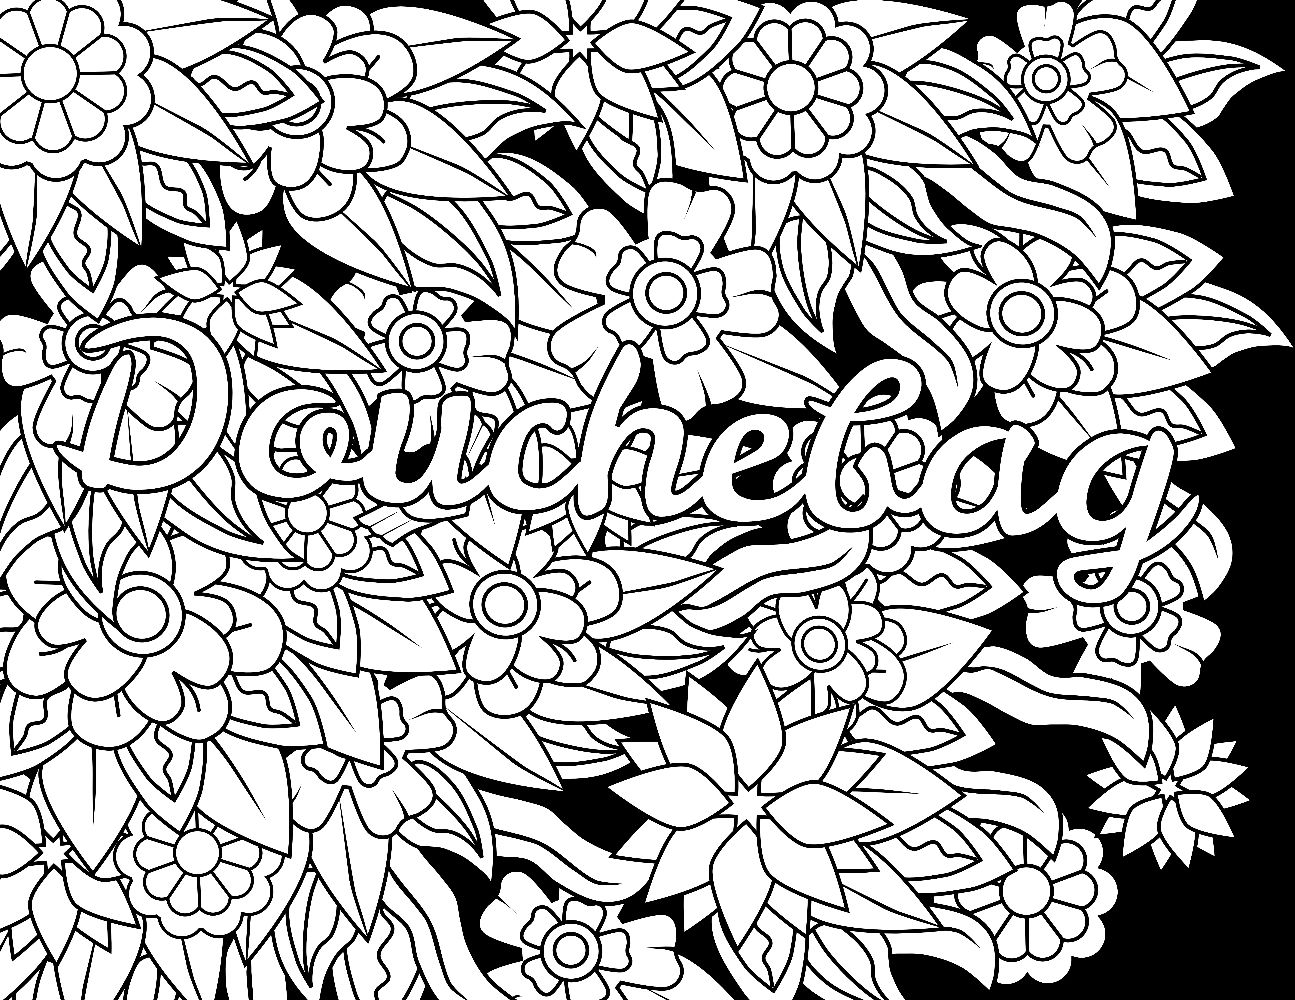 Bad word coloring pages - Douchebag Swear Word Coloring Page Adult Coloring Page Swearstressaway Com Comes